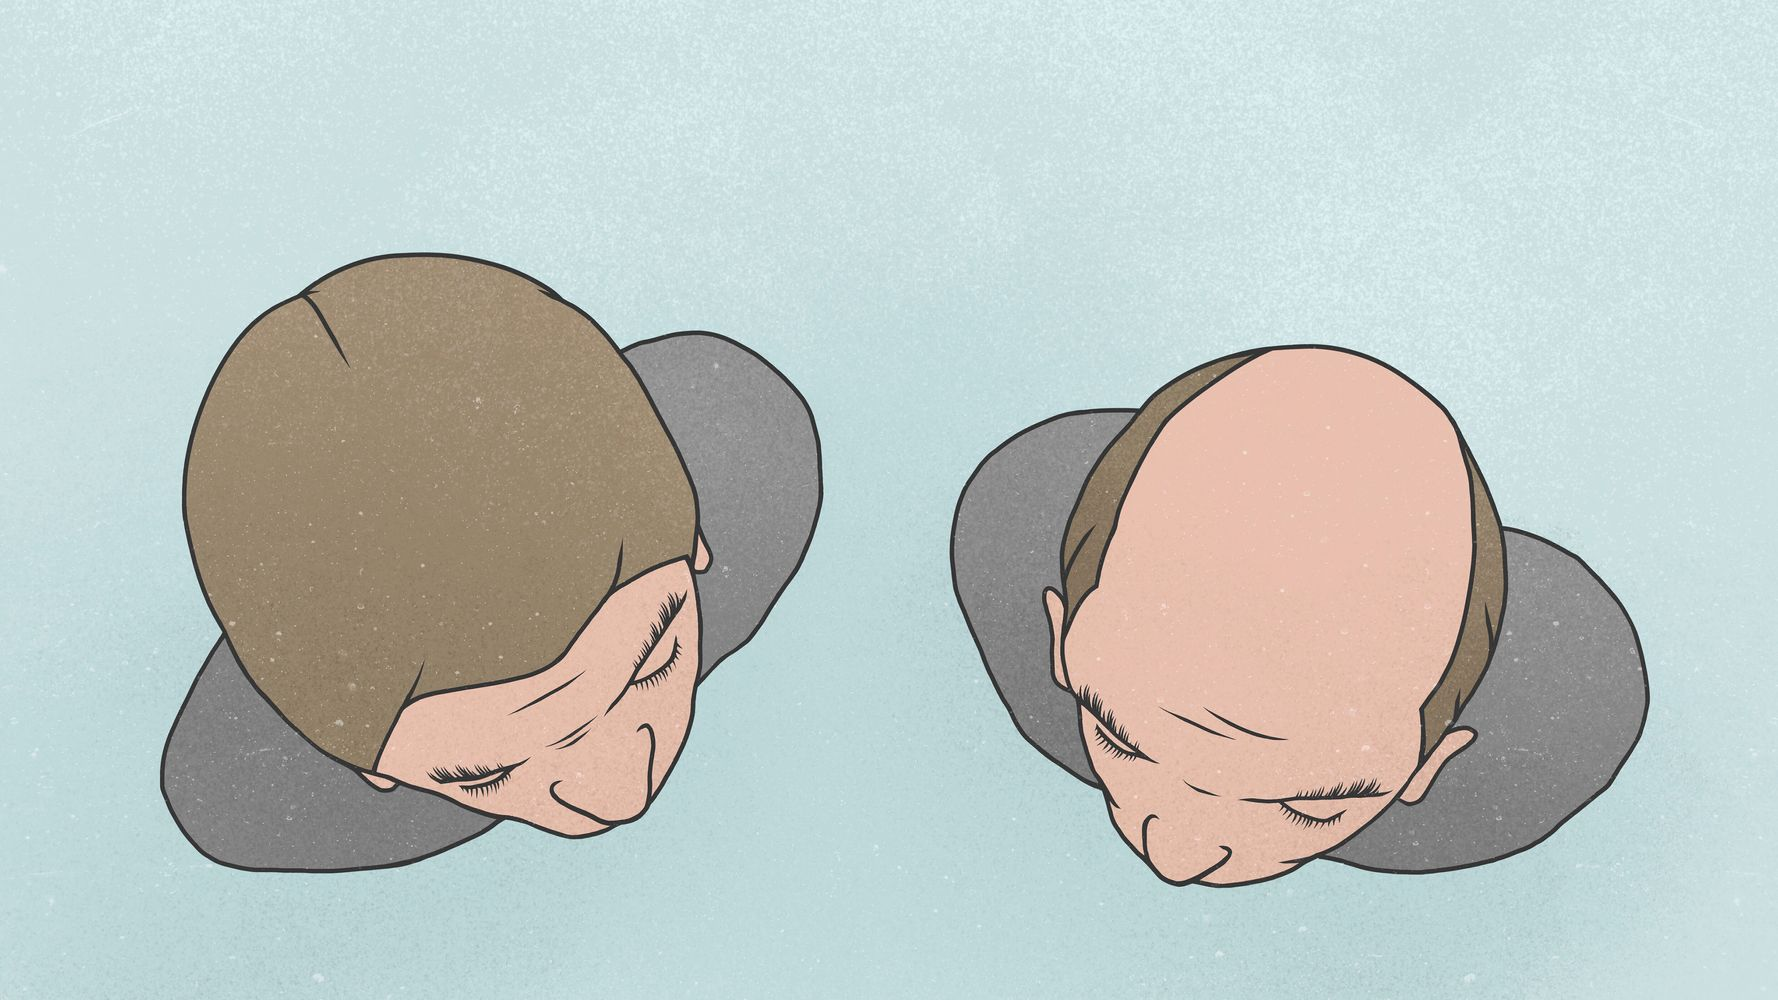 The Bald Facts: Air Pollution Could Be Causing Your Hair Loss